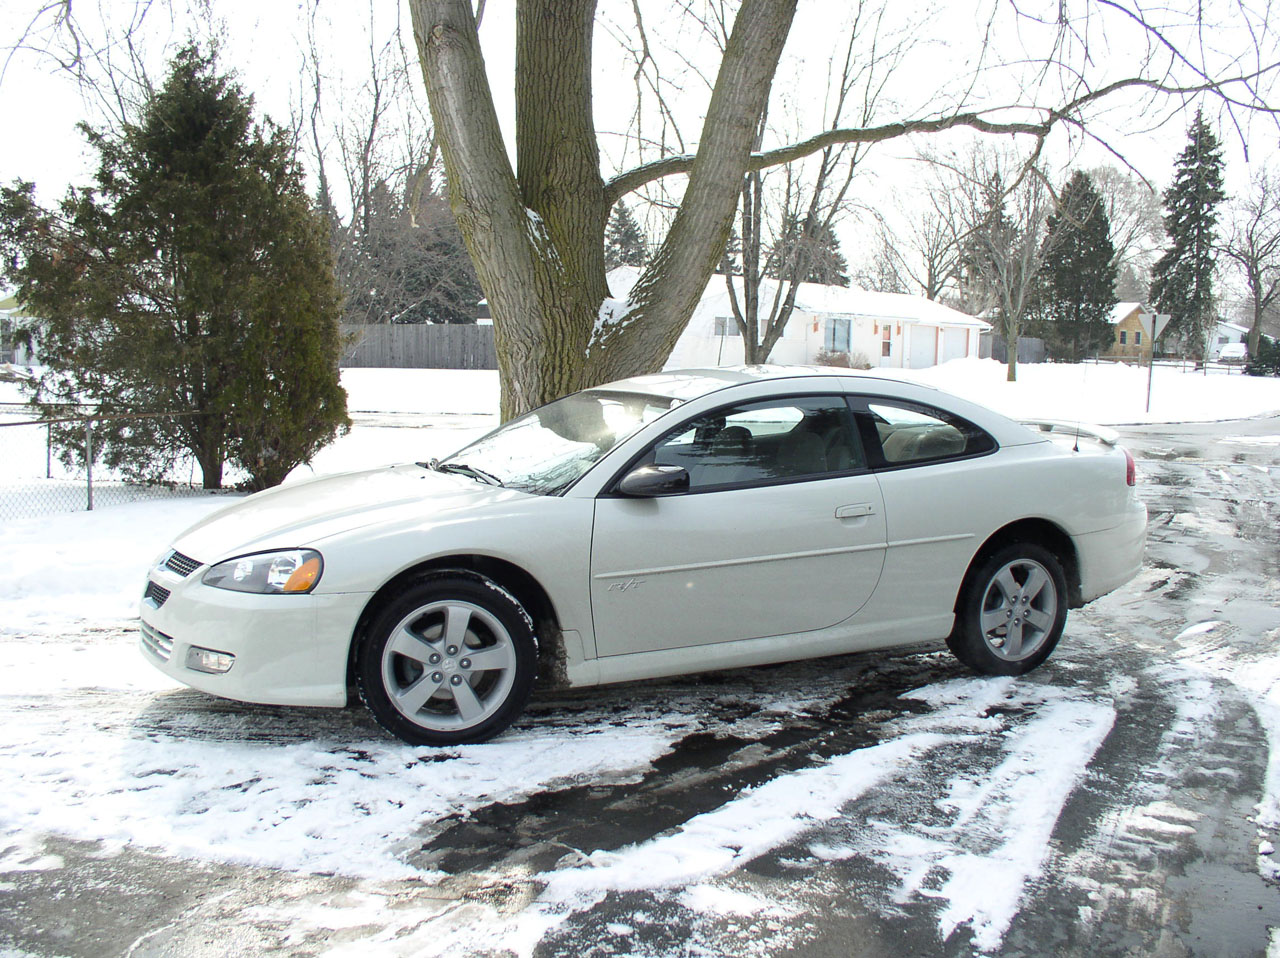 Stock 2003 Dodge Stratus R/T 1/4 mile Drag Racing timeslip specs 0-60 - DragTimes.com